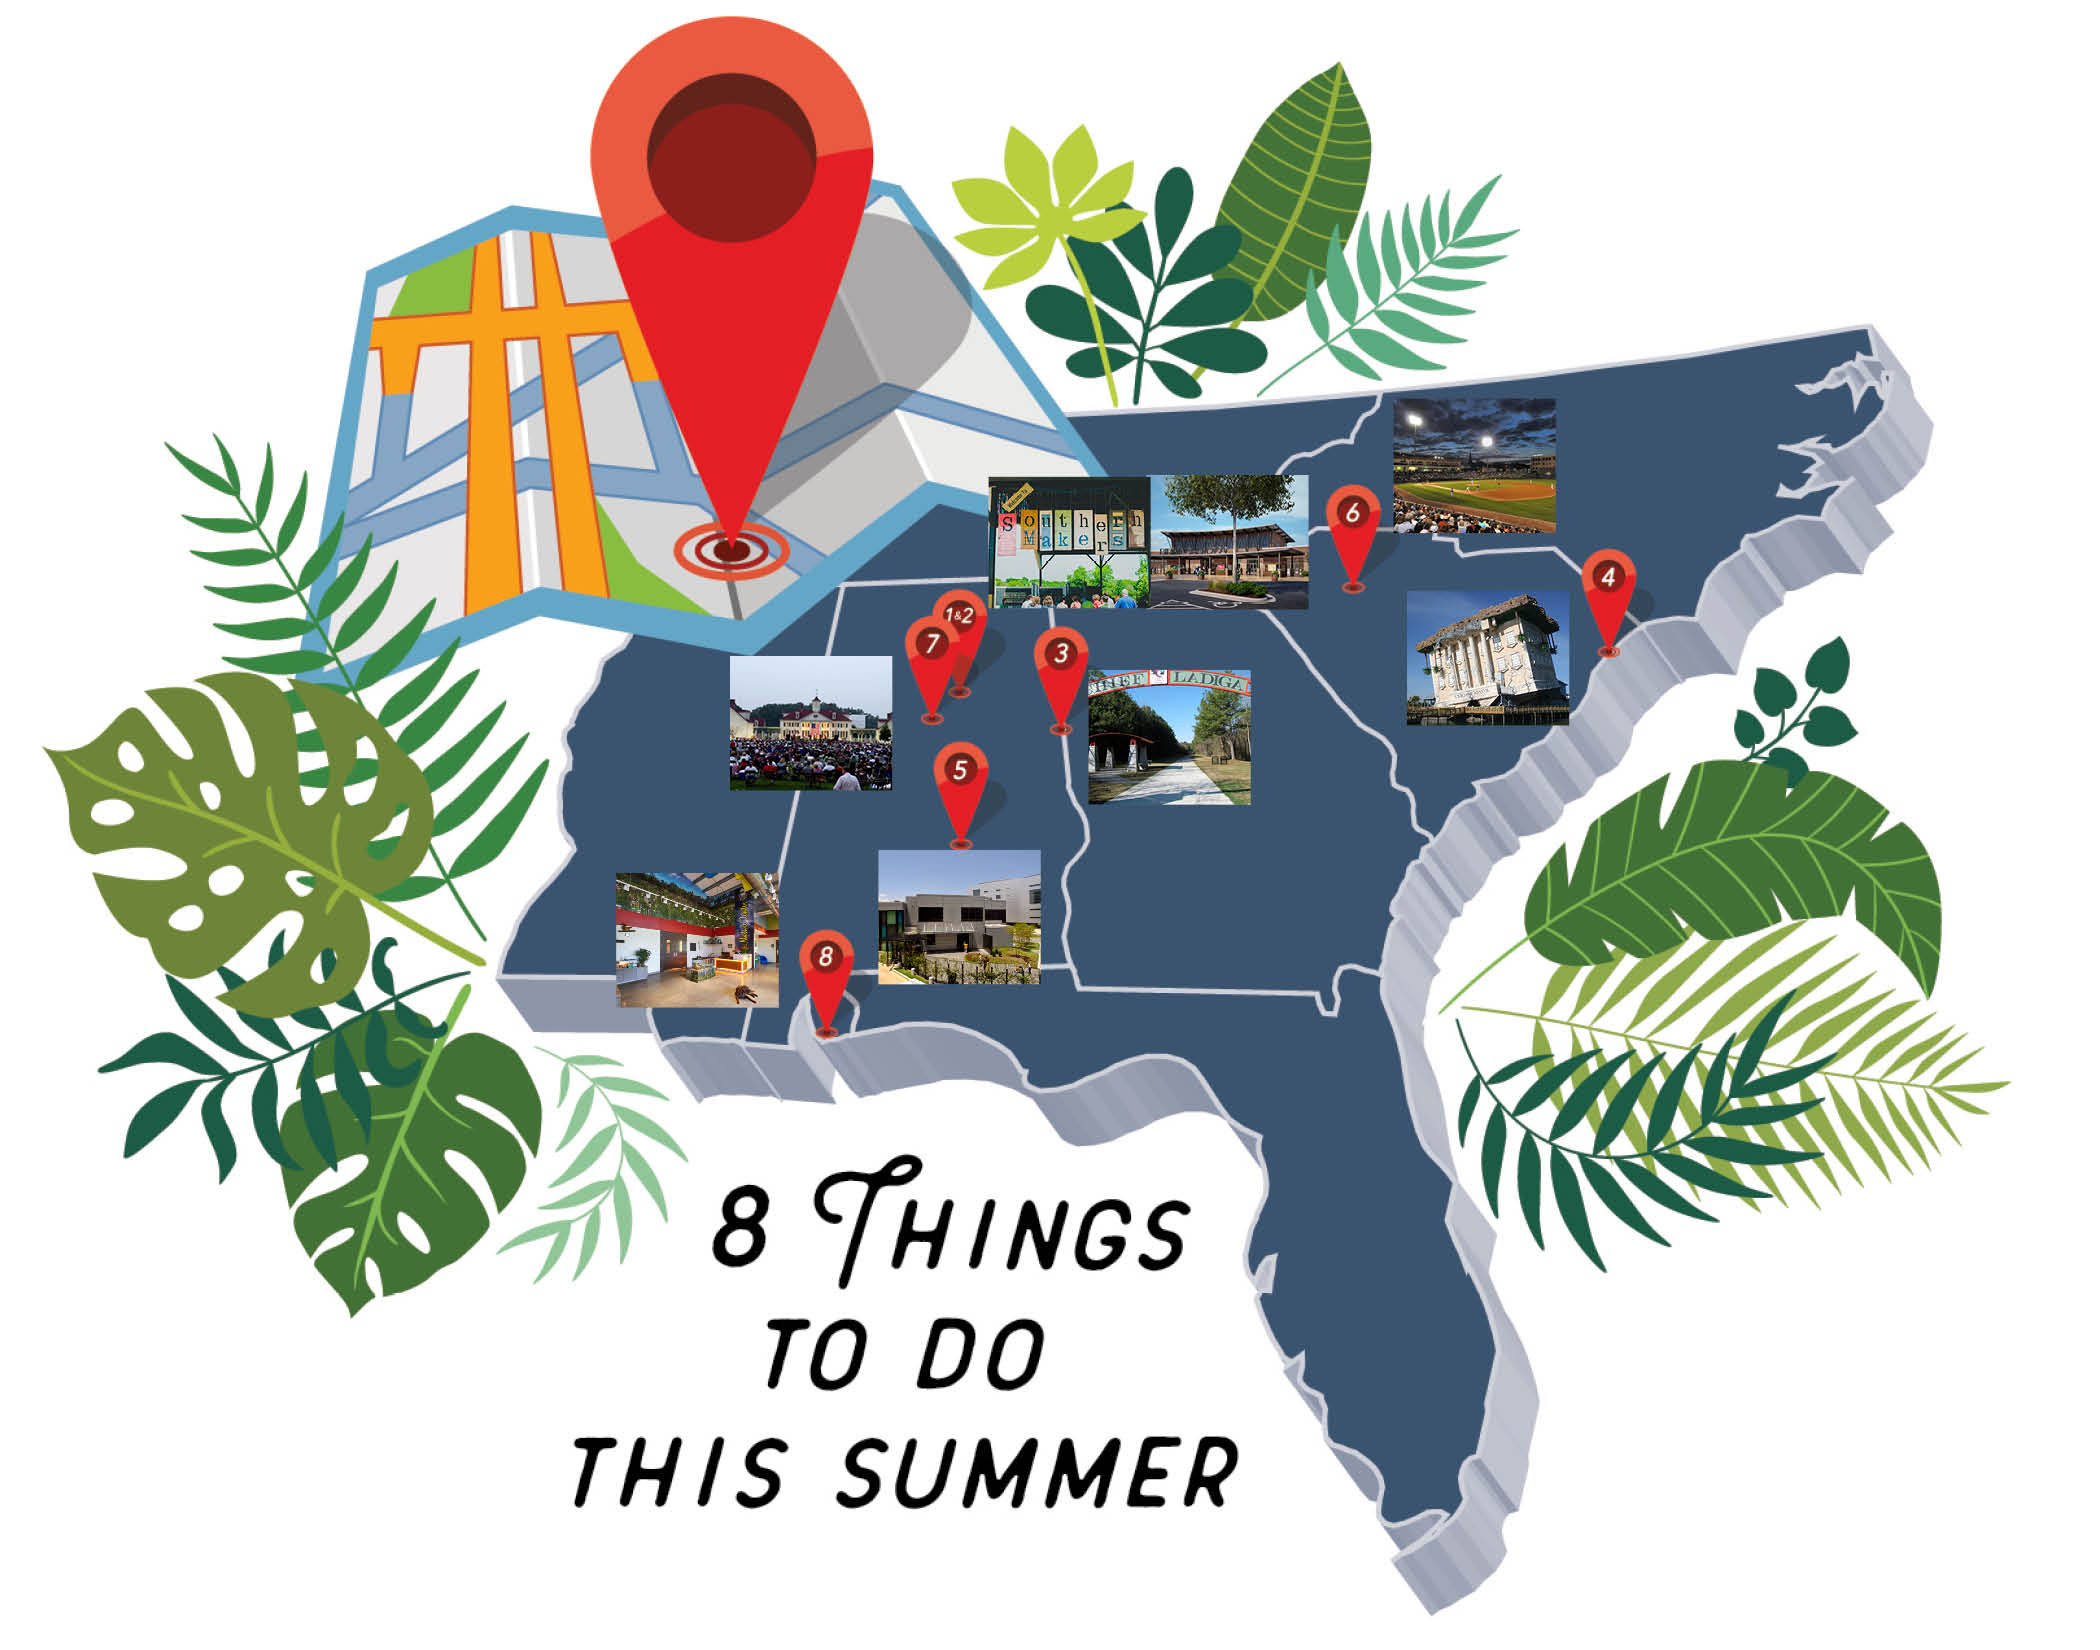 8 Things To Do This Summer Graphic